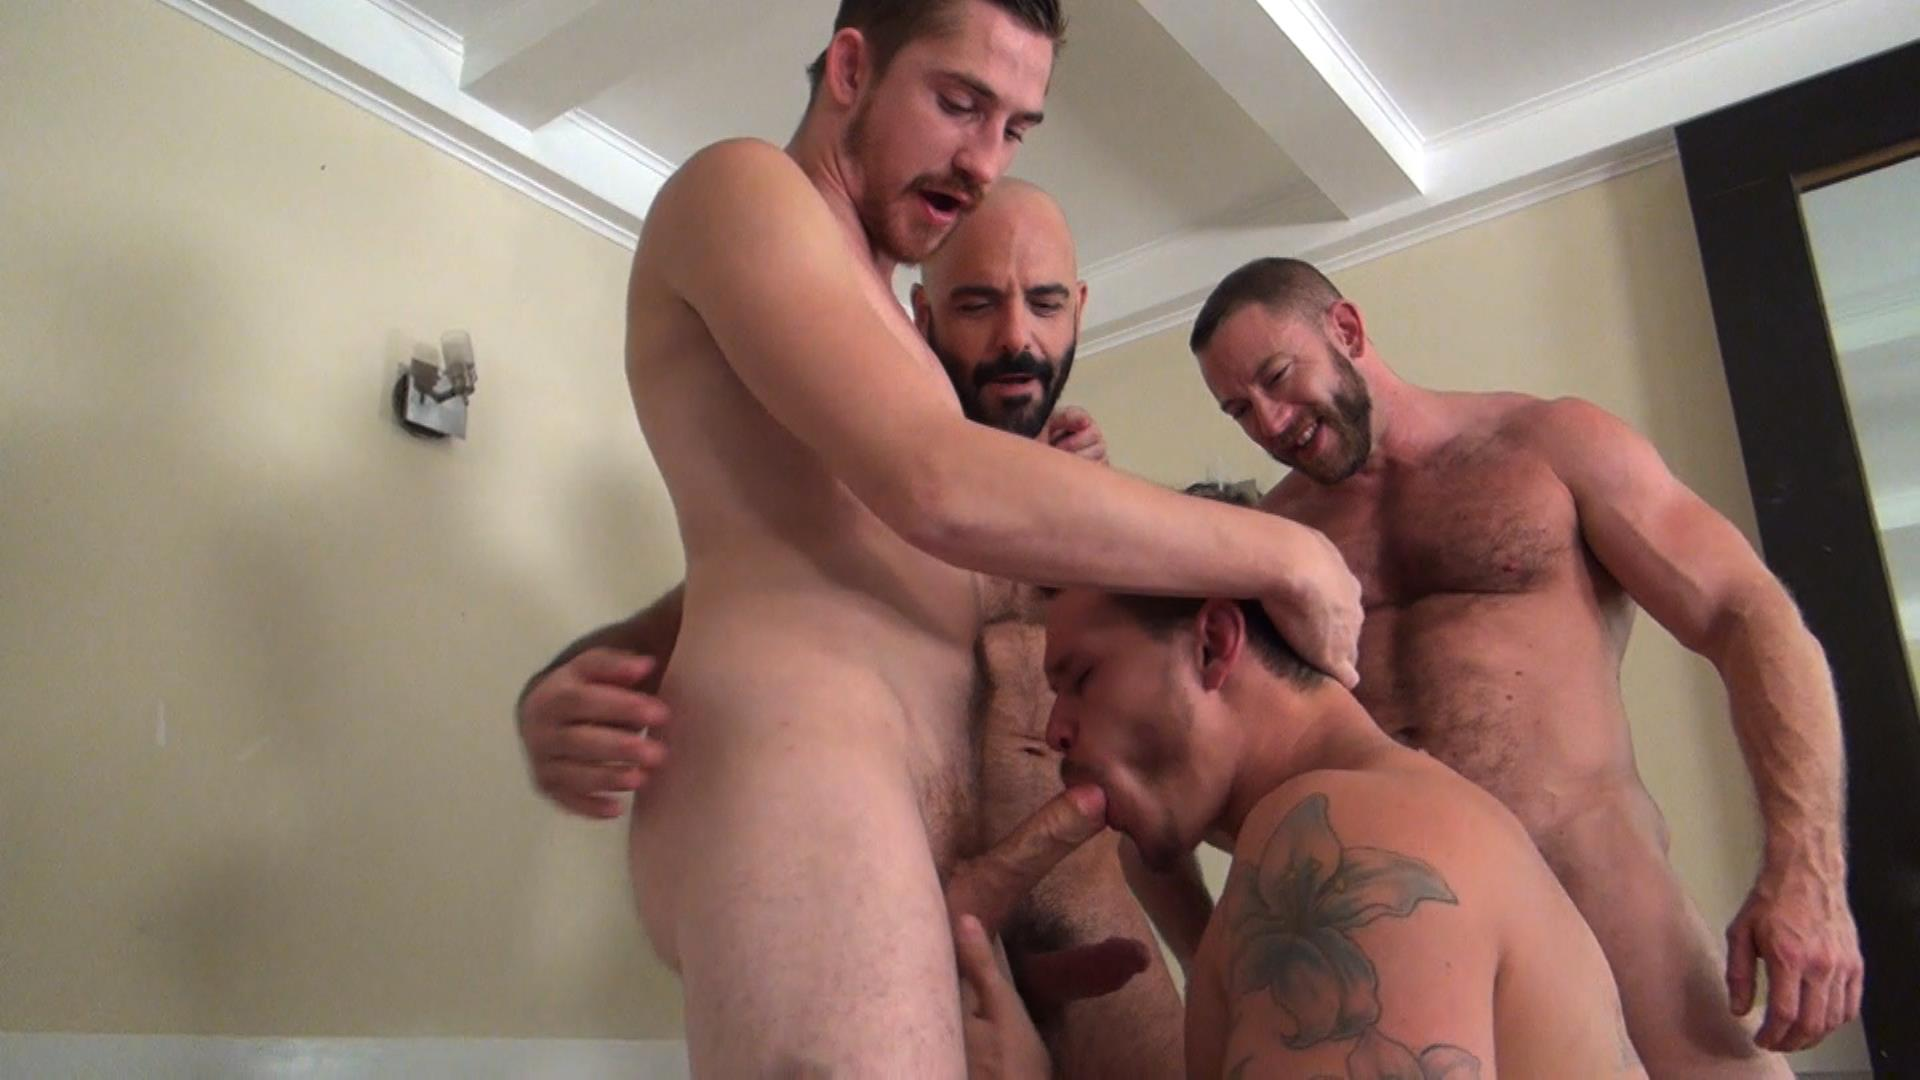 Raw Fuck Club Dayton OConnor Tate Ryder Shay Michaels Adam Russo Bareback Breeding Amateur Gay Porn 4 Tate Ryder Gets Three Hairy Muscle Daddy Bareback Cocks